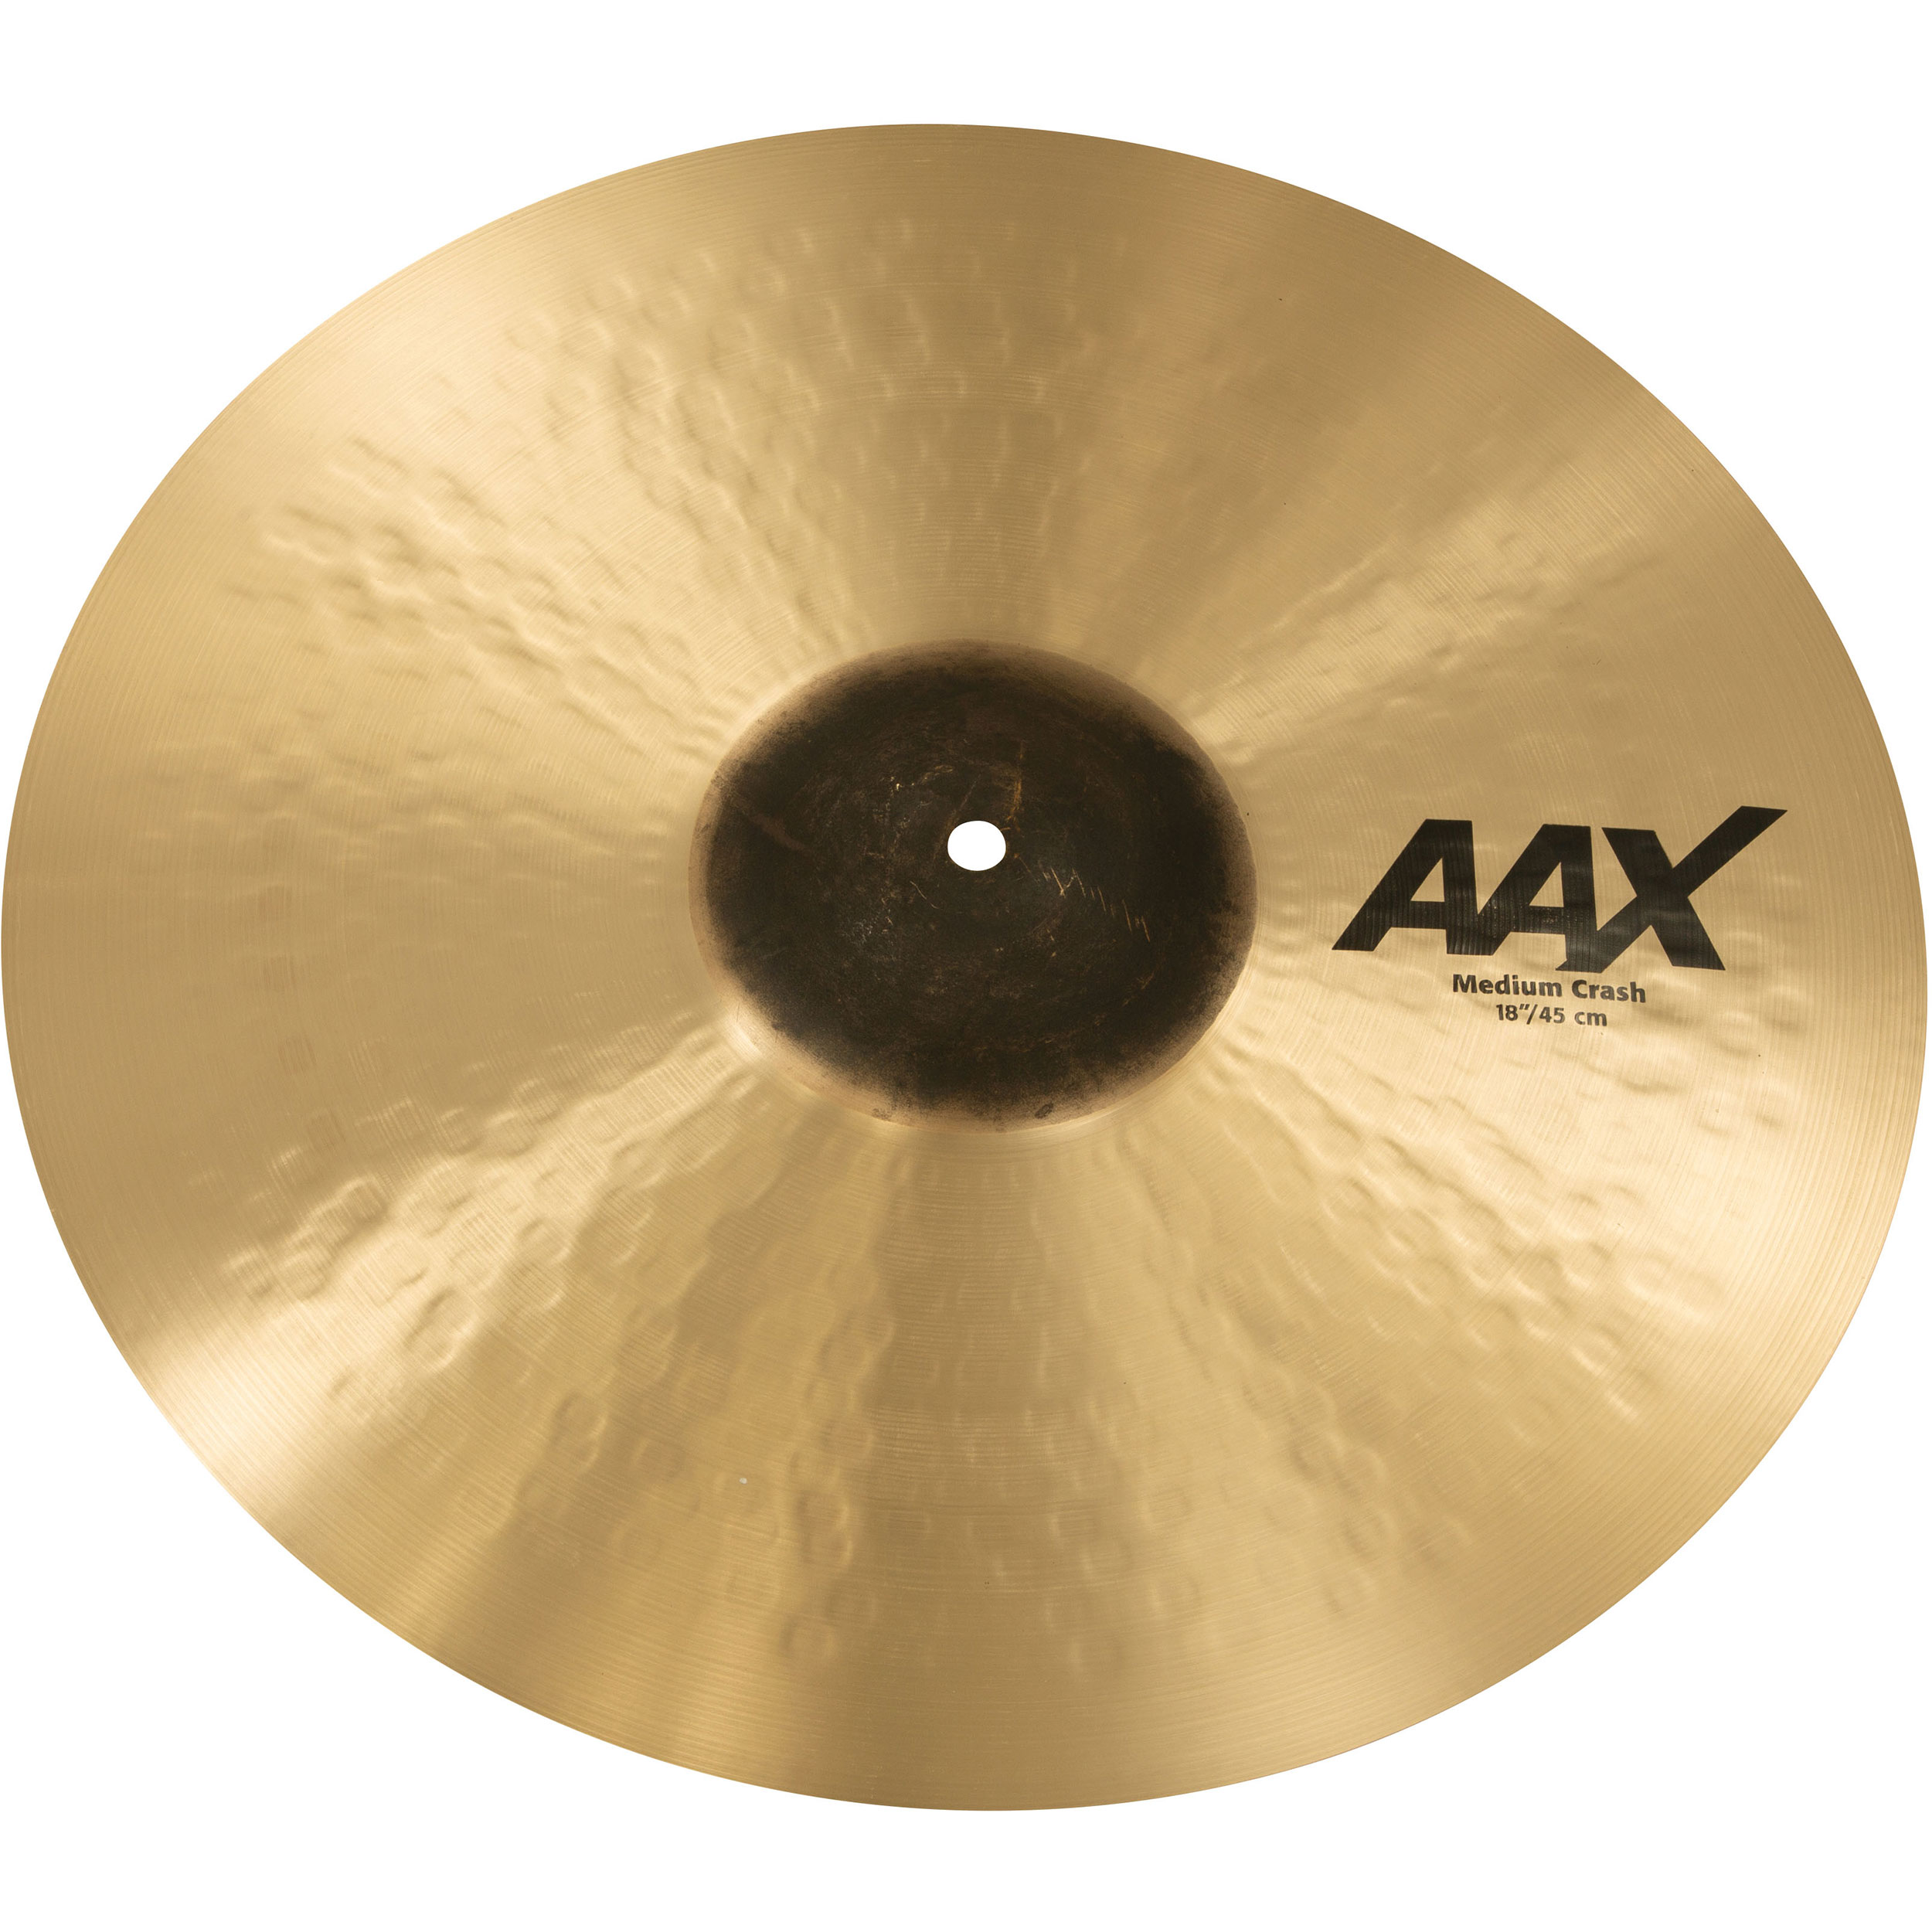 "Sabian 18"" AAX Medium Crash Cymbal"